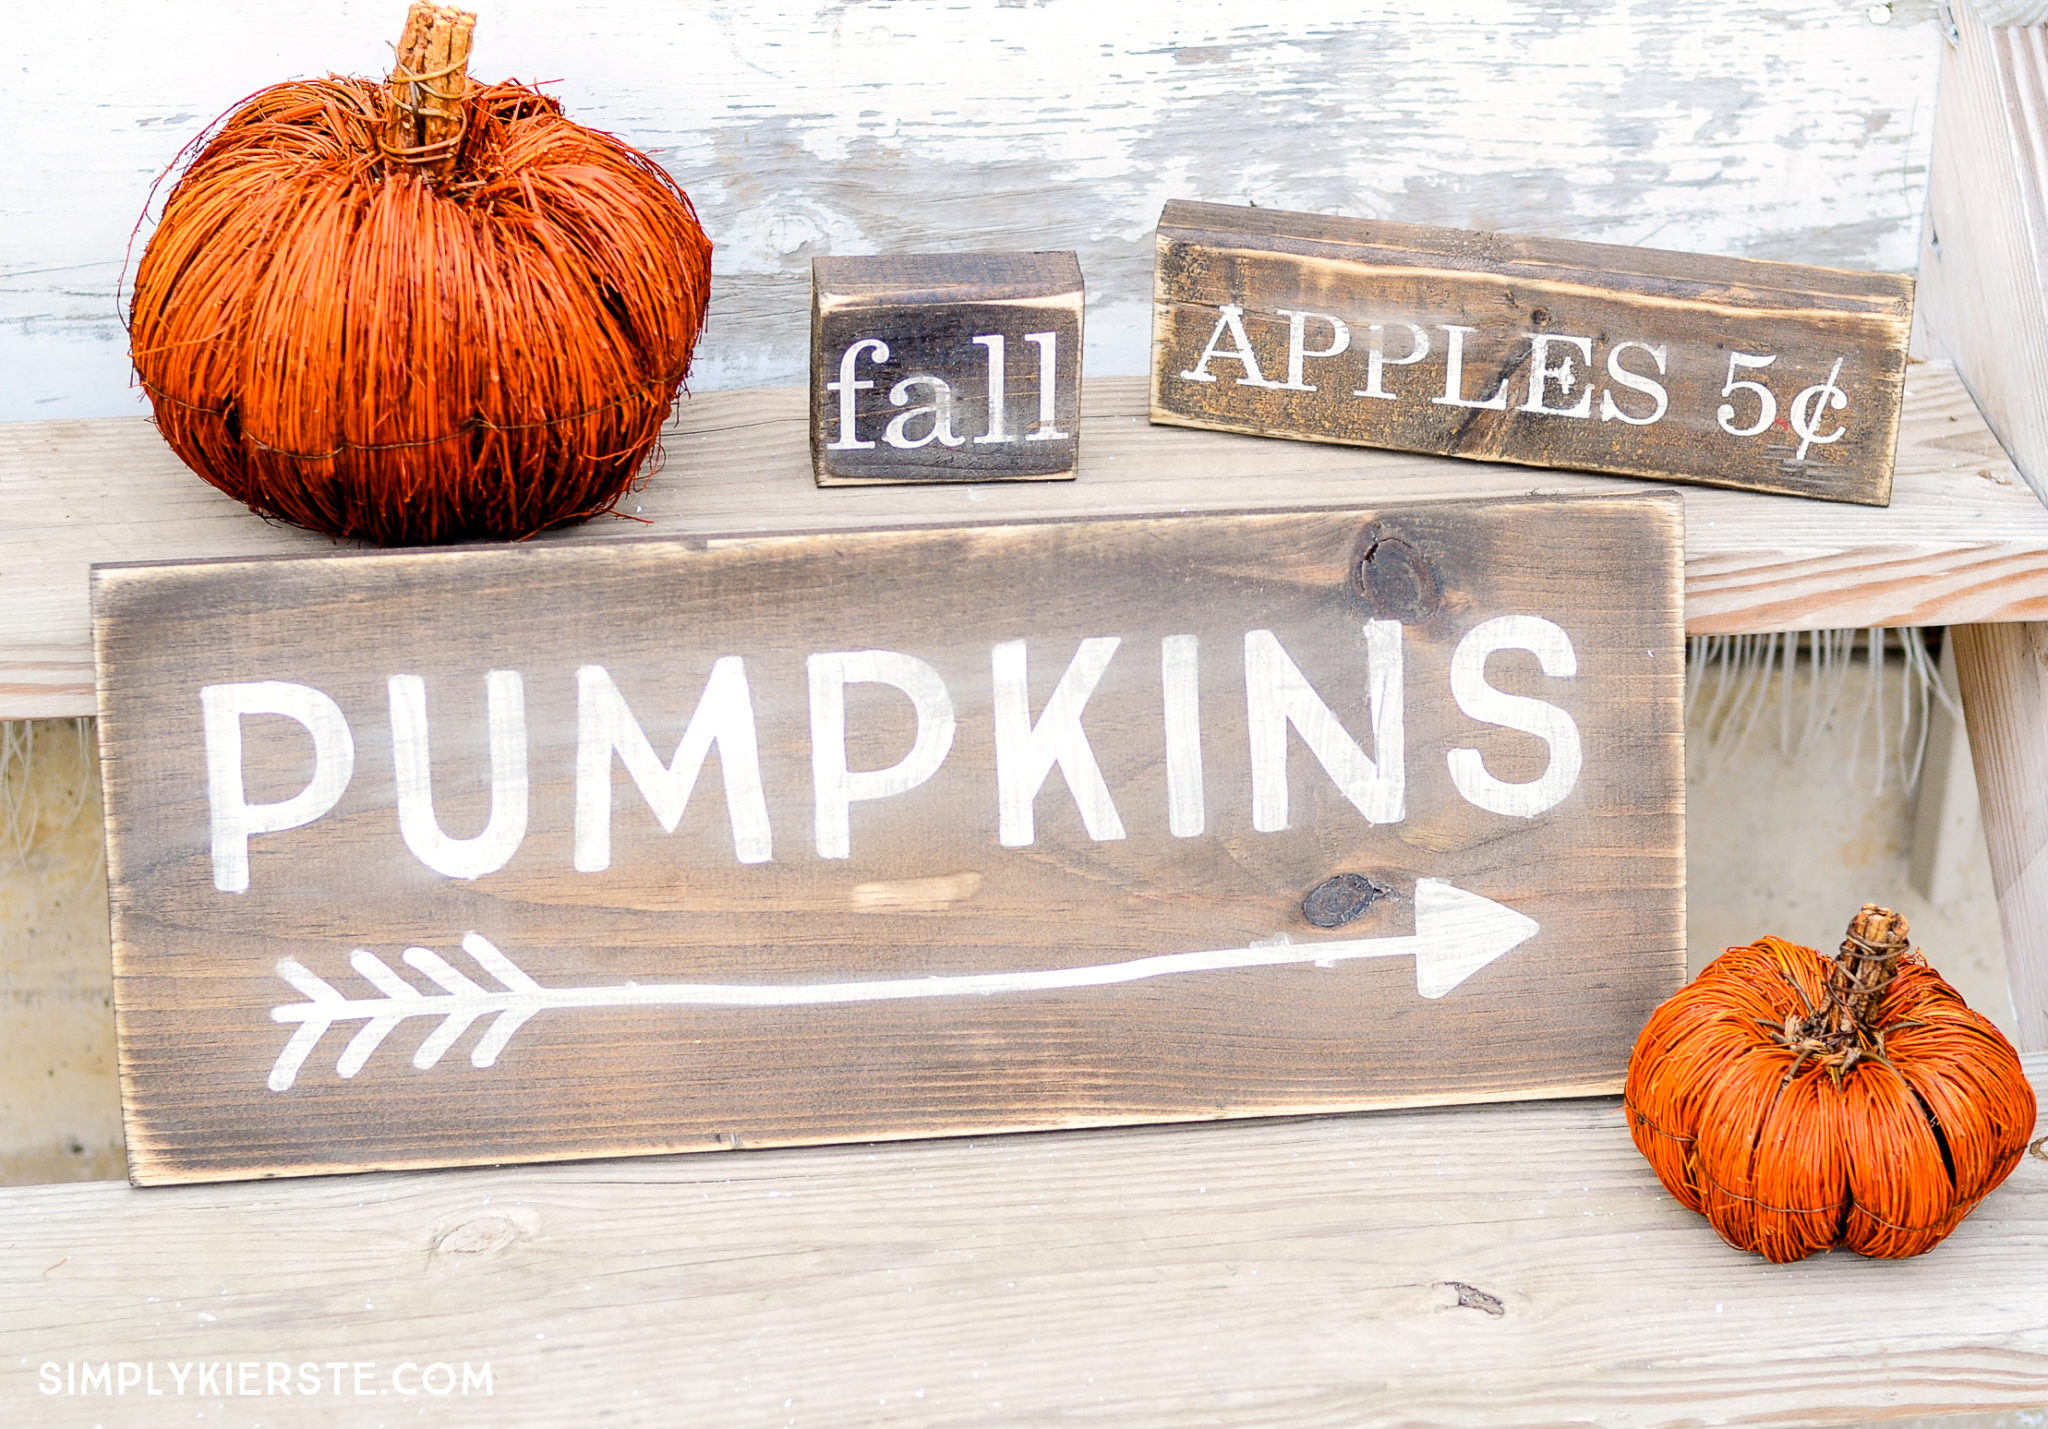 Farmhouse Style Fall Wood Signs| Free Silhouette Cut File | simplykierste.com